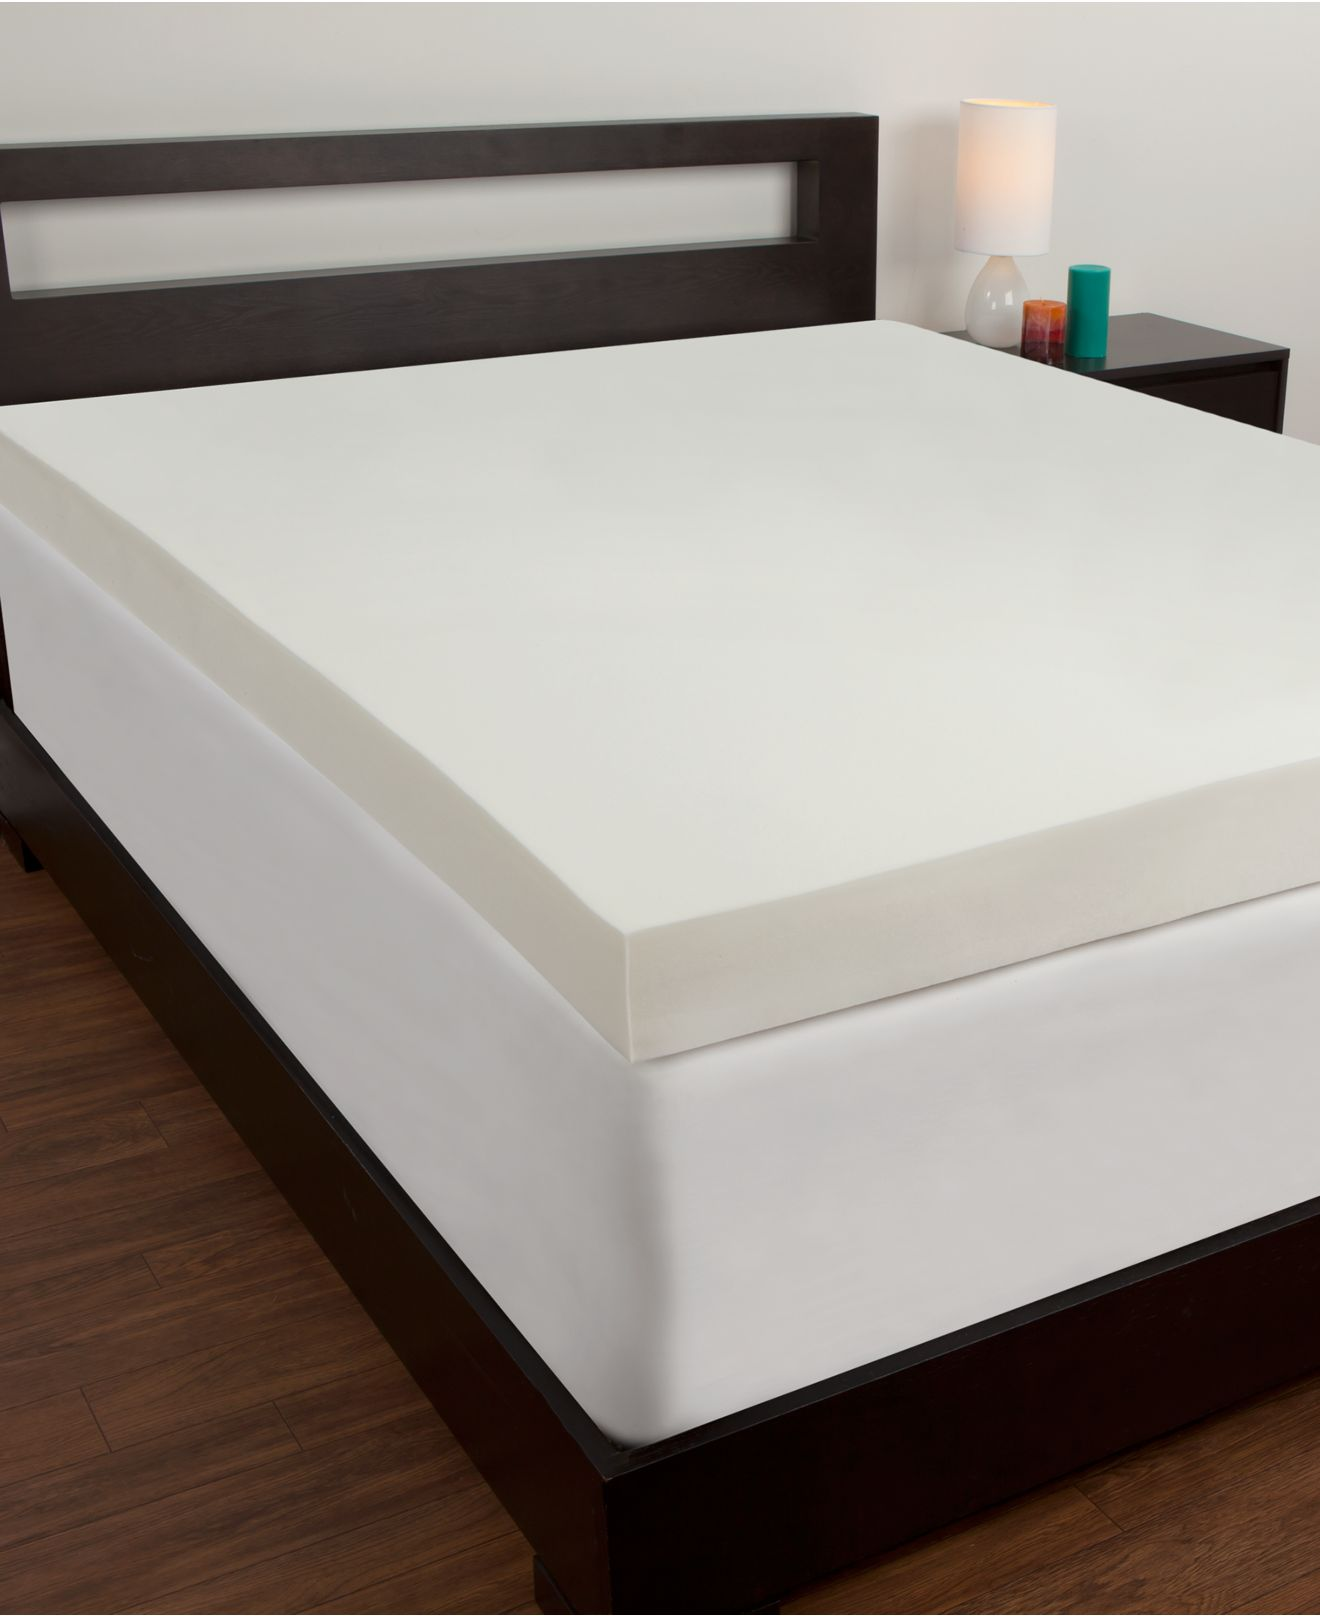 Comfort revolution 4'' memory foam mattress toppers   mattress ...